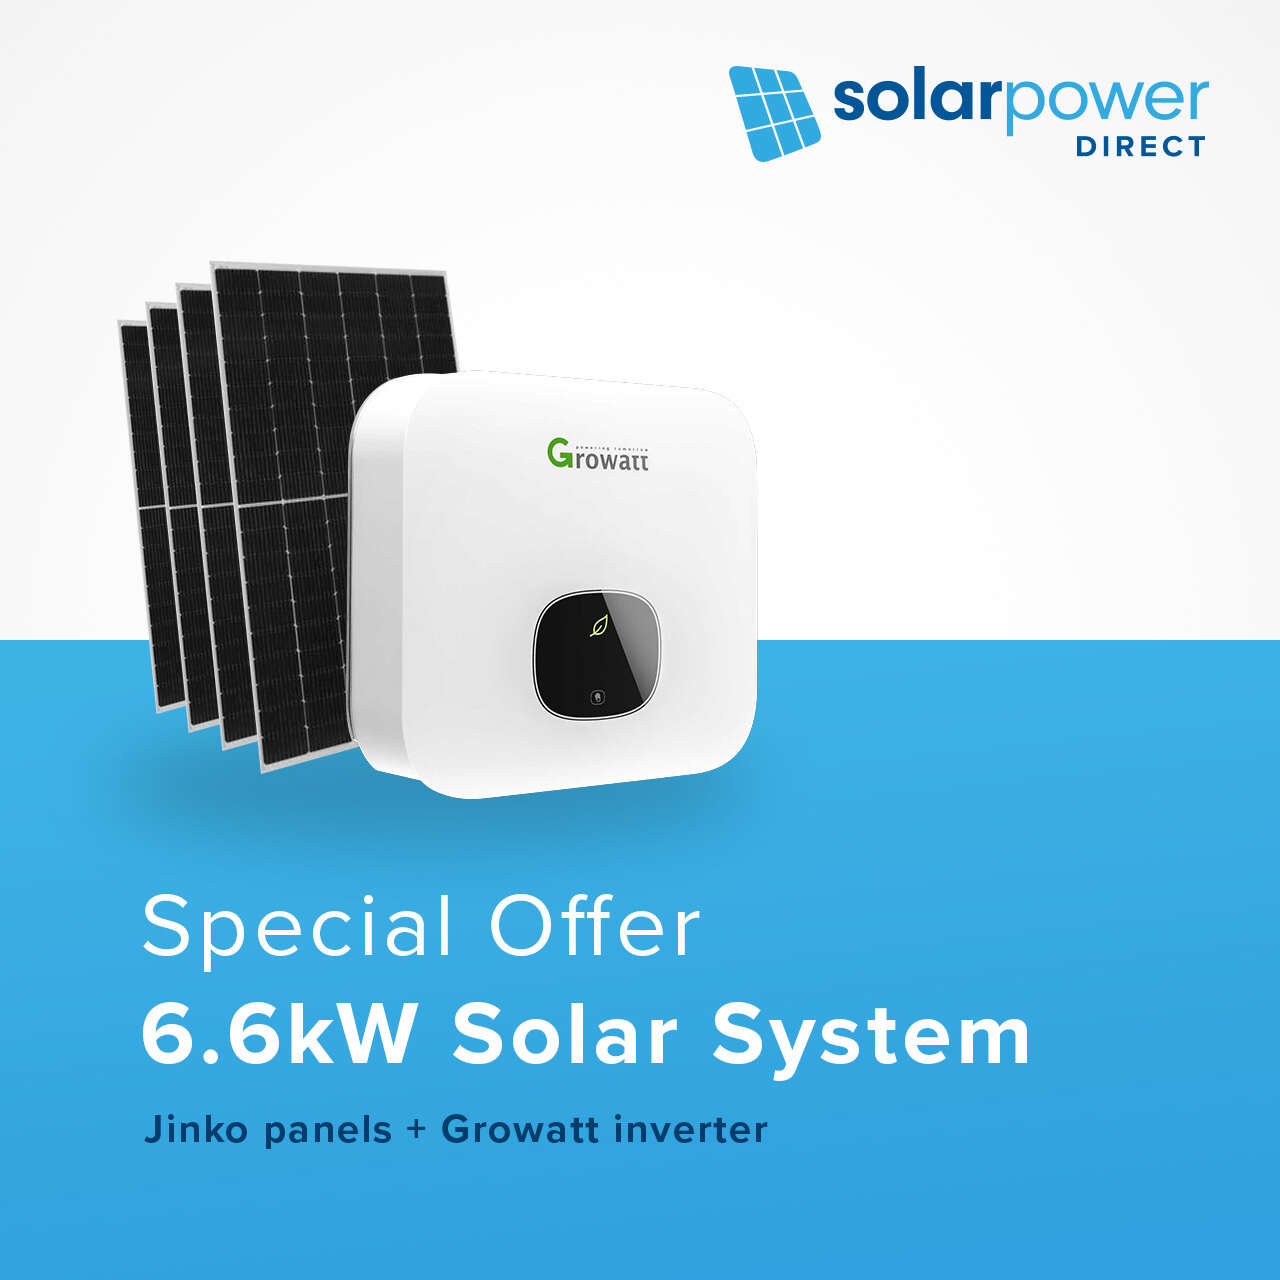 8.8kW Solar System for $4,609